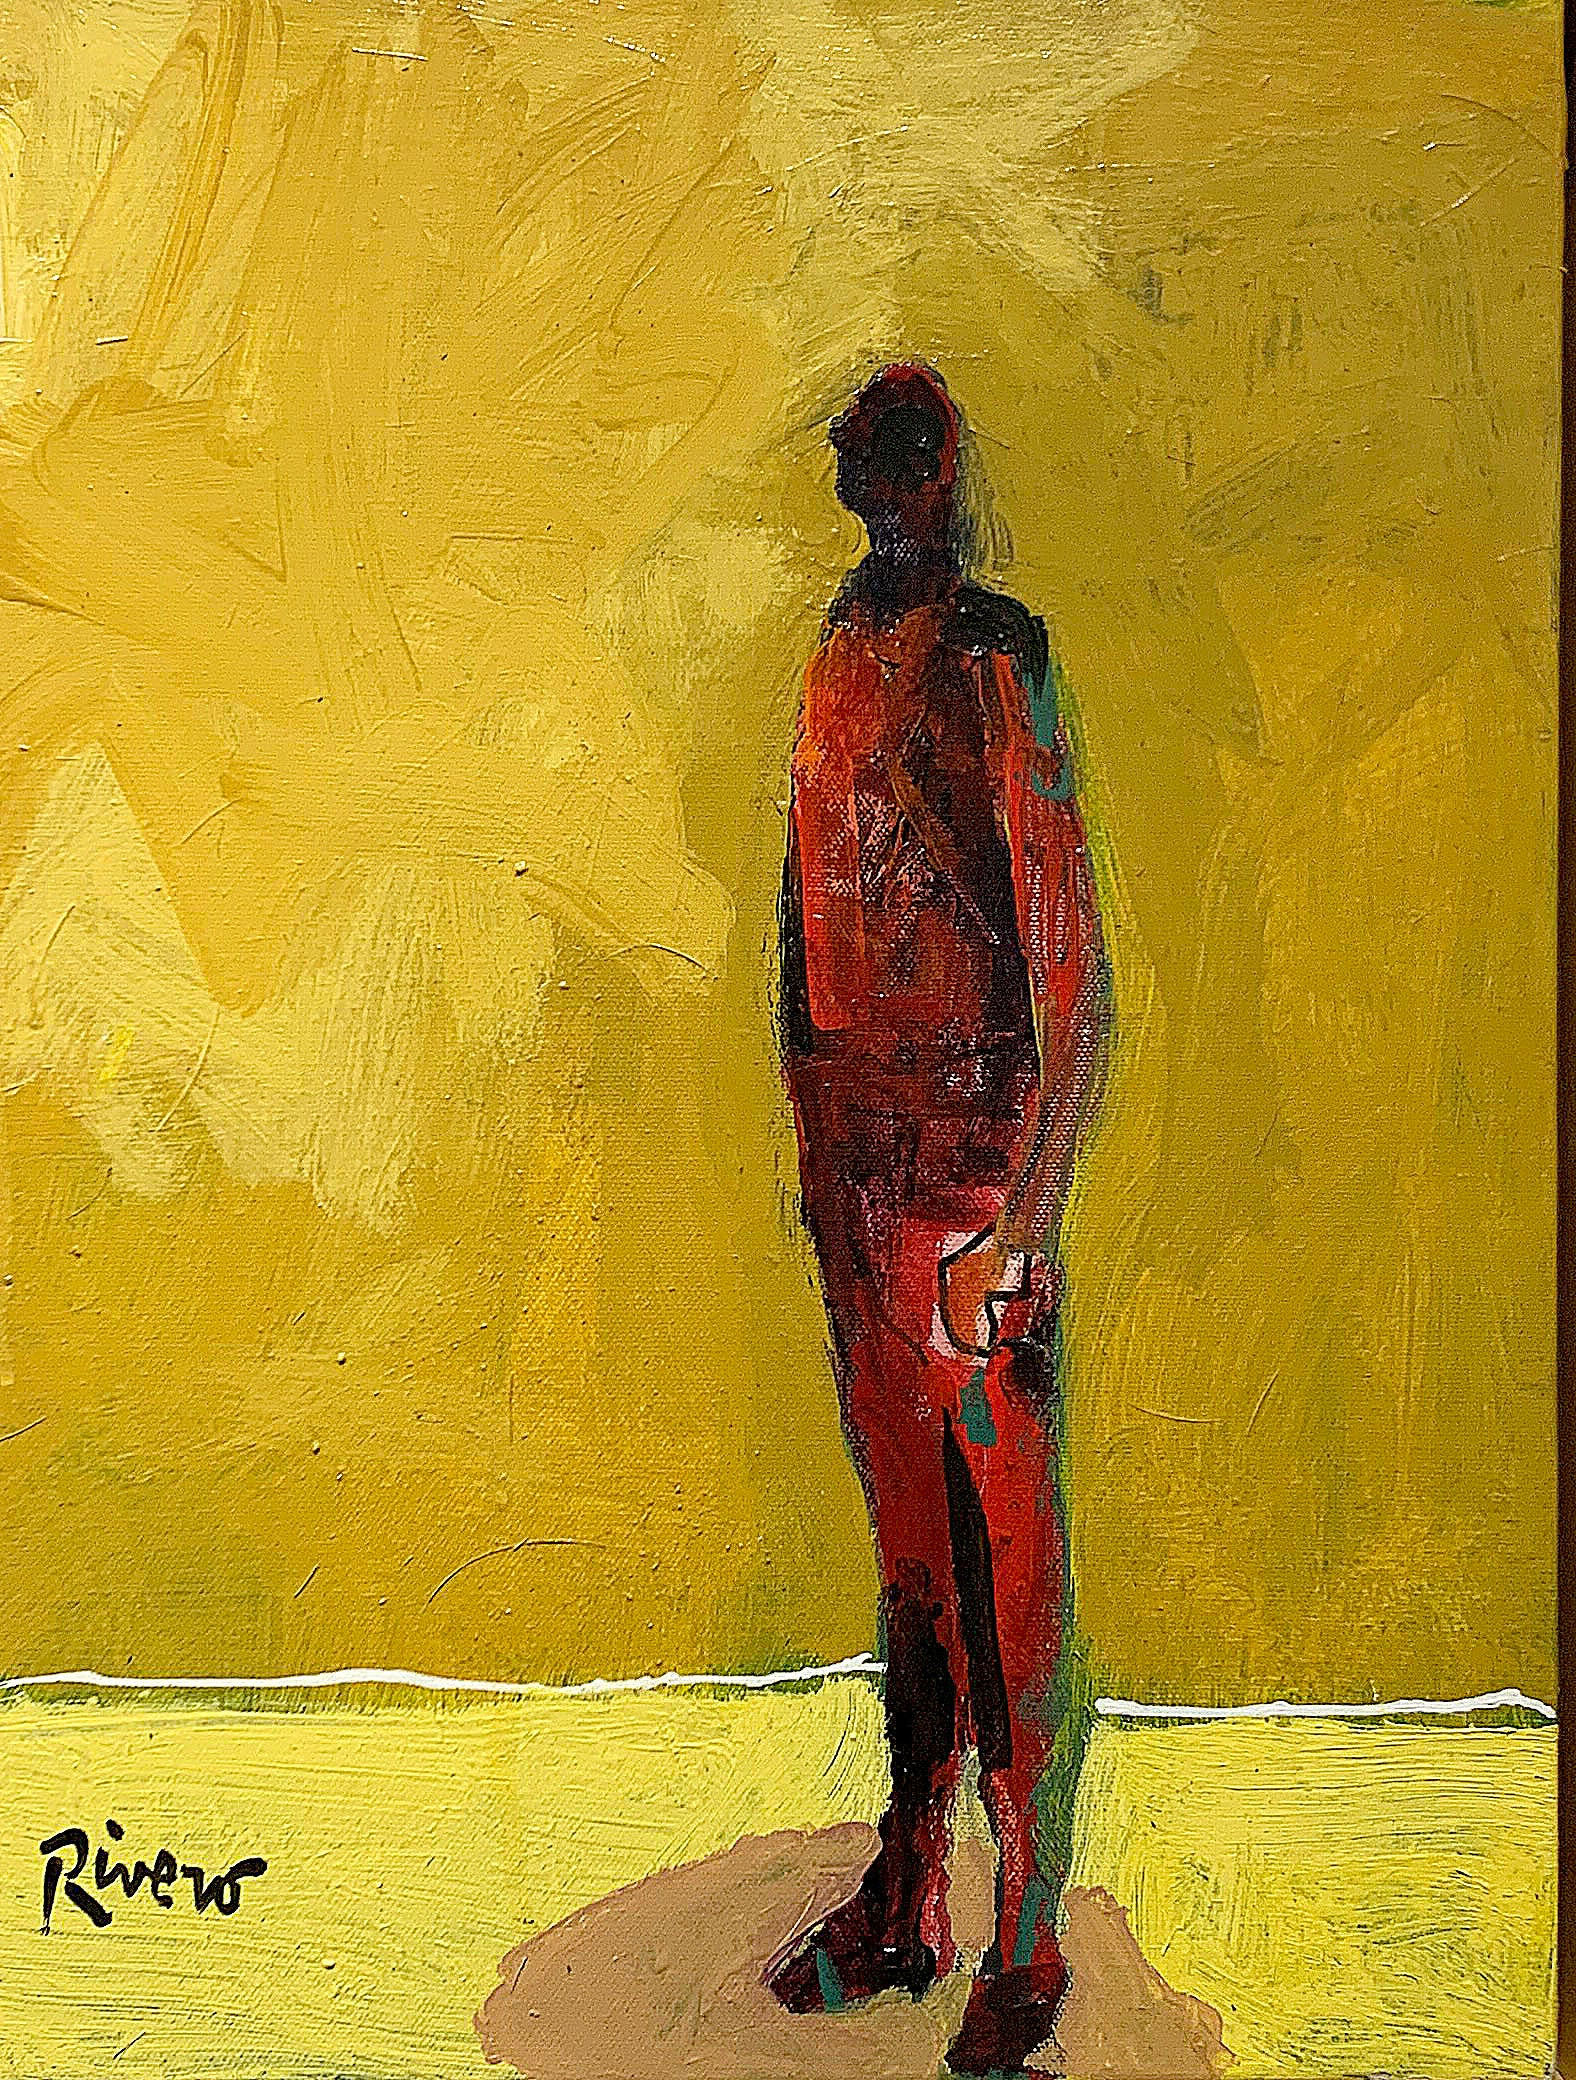 Personaje, figurative acrylic painting of man standing facing left